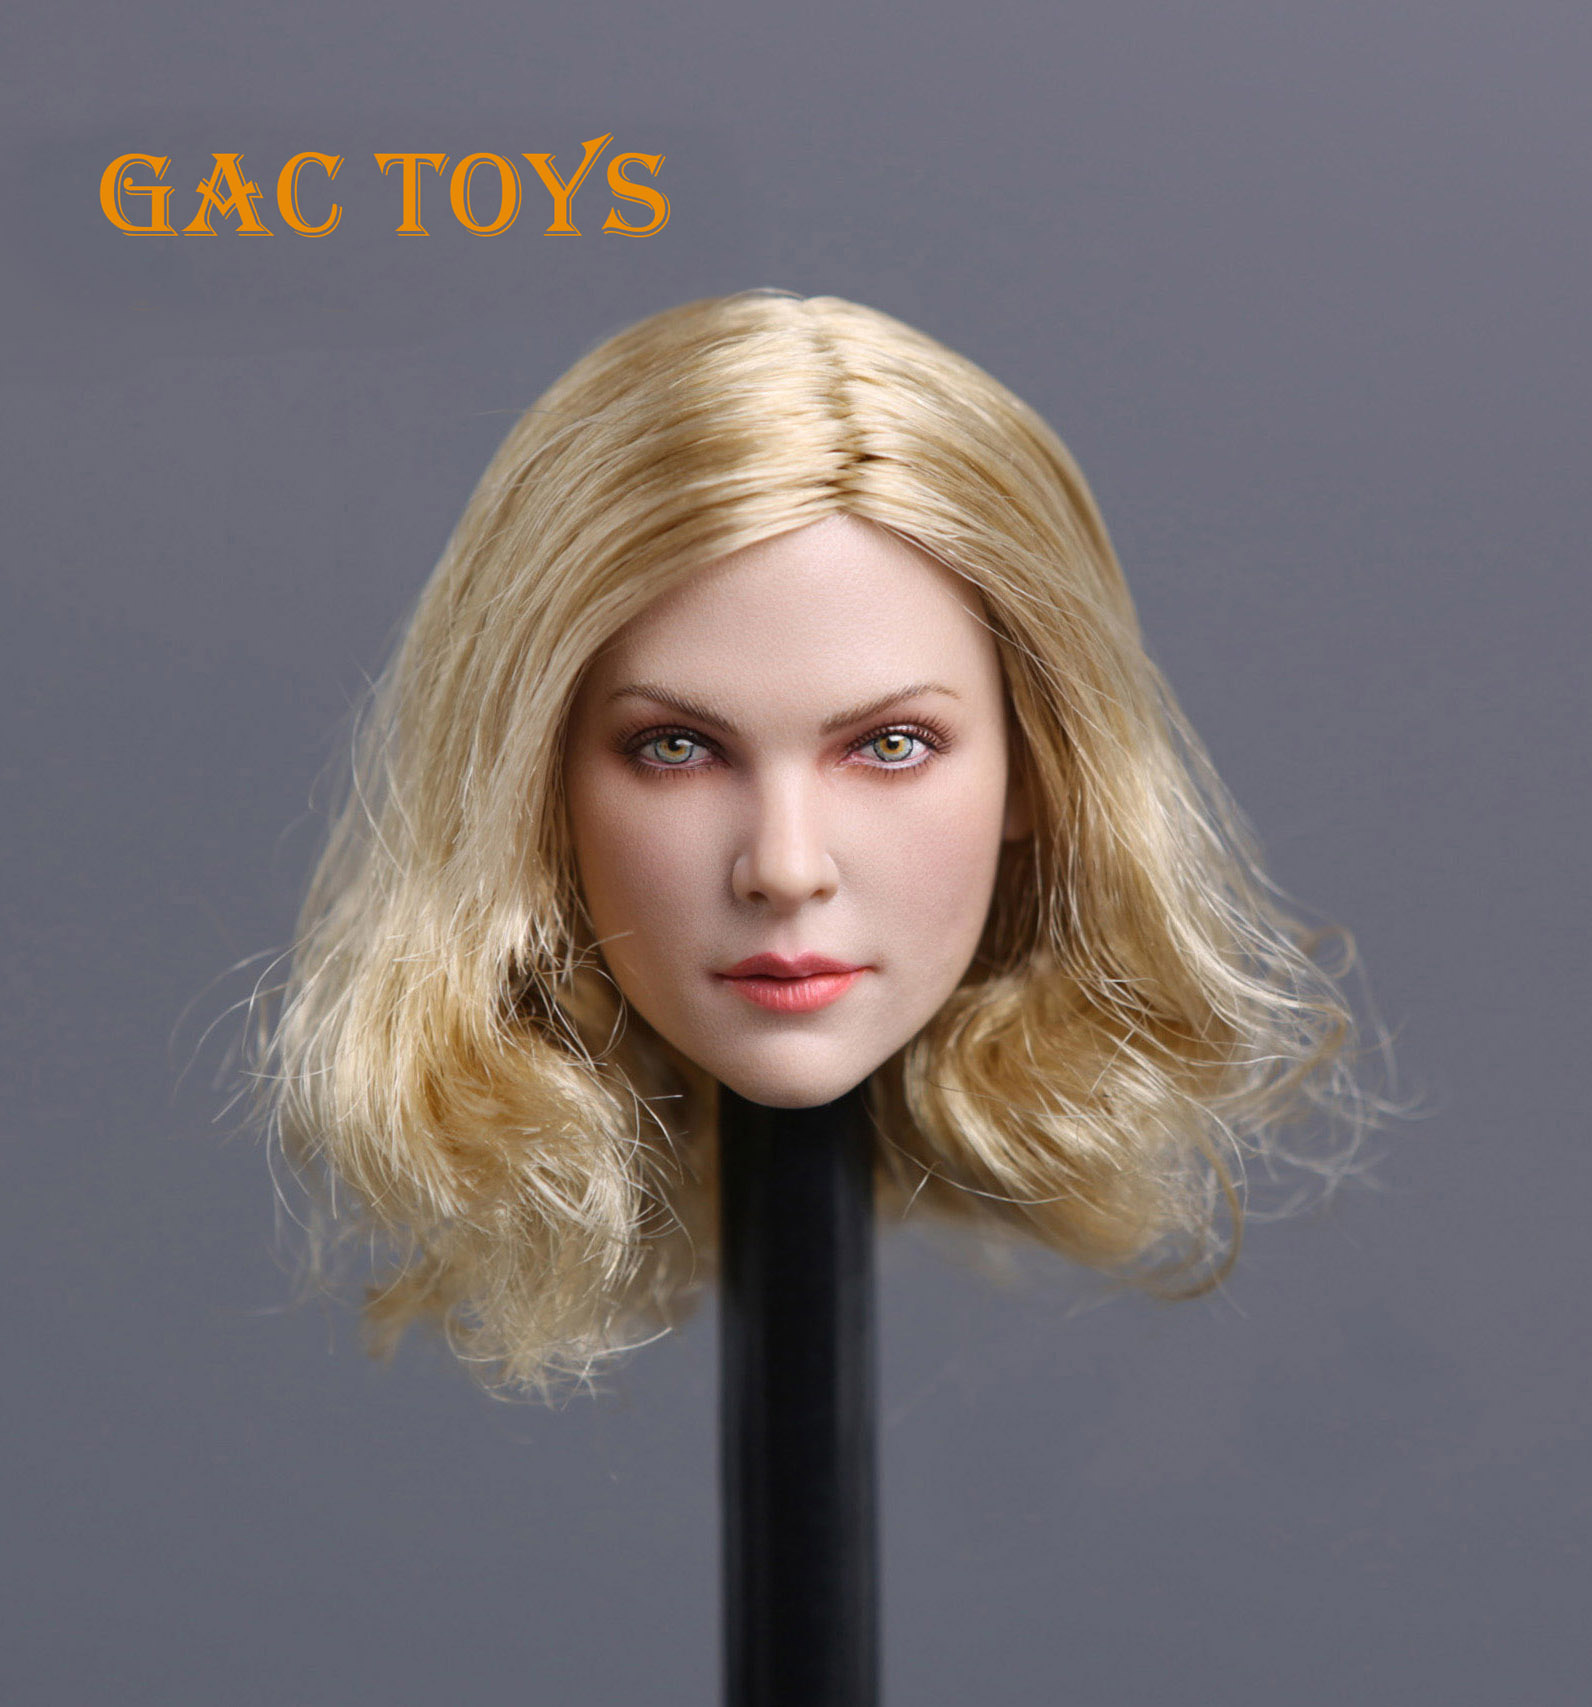 GACTOYS GC001 Europe and United States Headsculpt